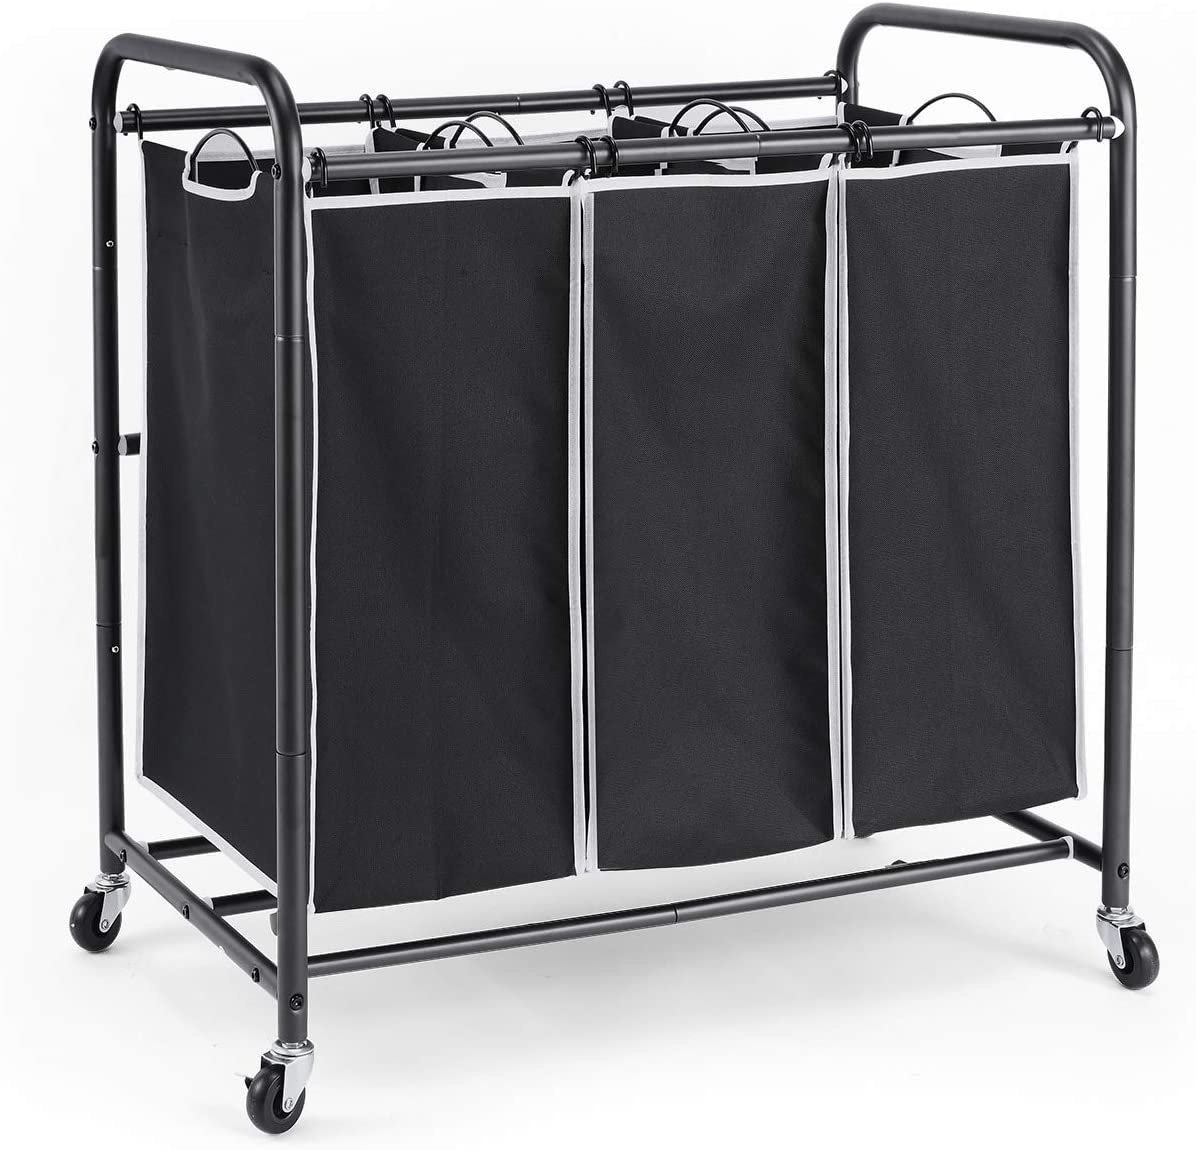 ROMOON Laundry Sorter 3 Rolling with Bag Hamper Challenge the lowest Product price of Japan ☆